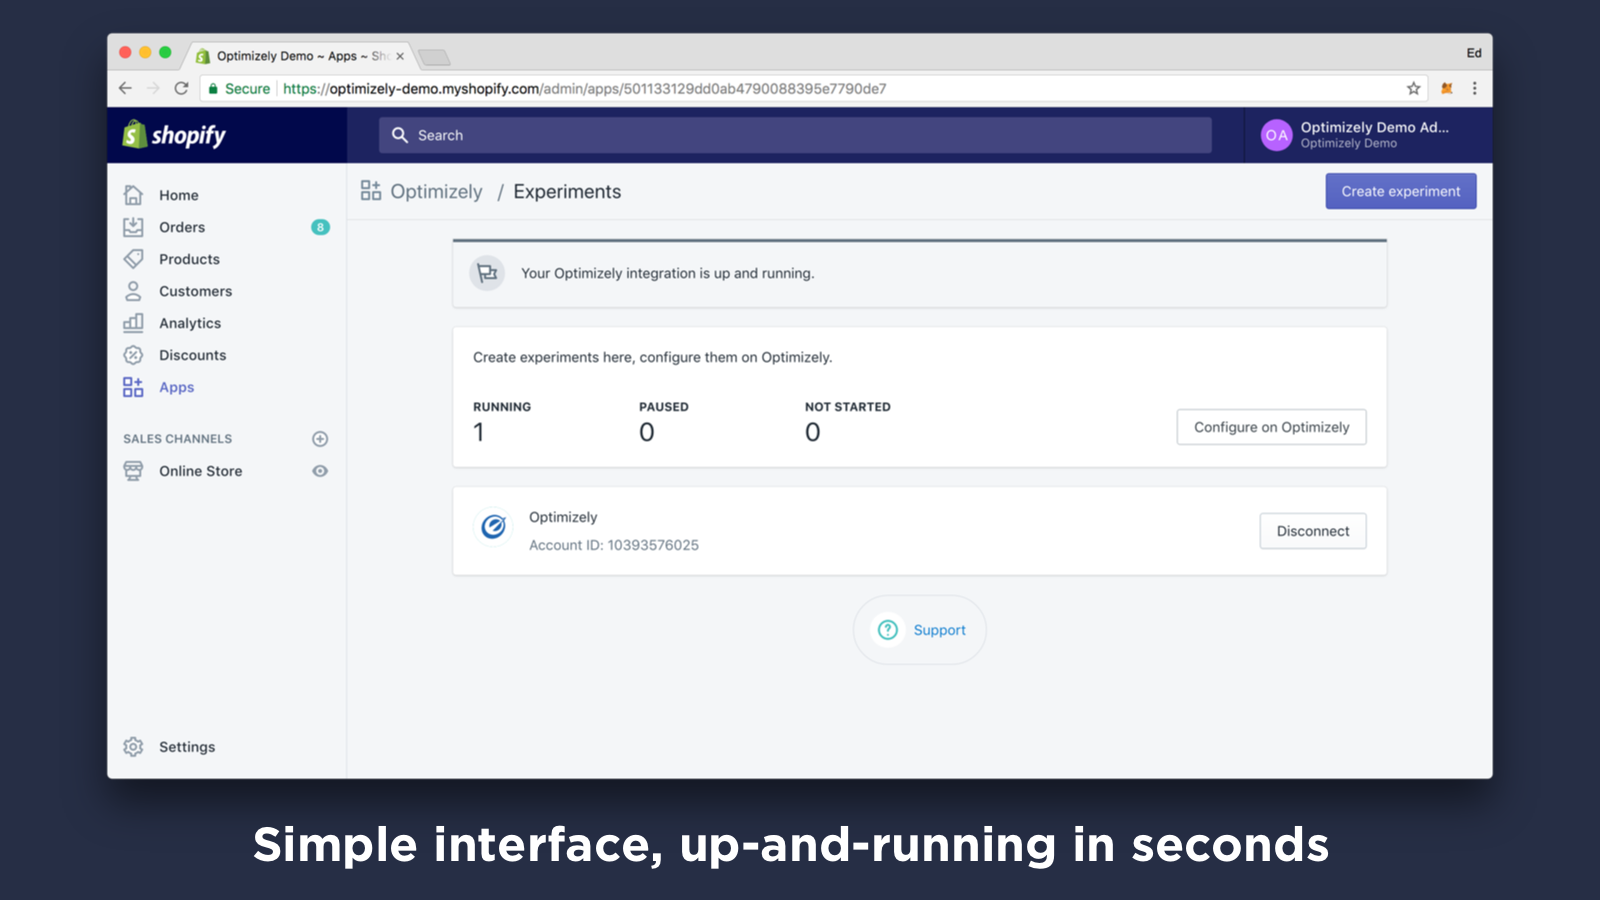 Simple interface, up and running in seconds